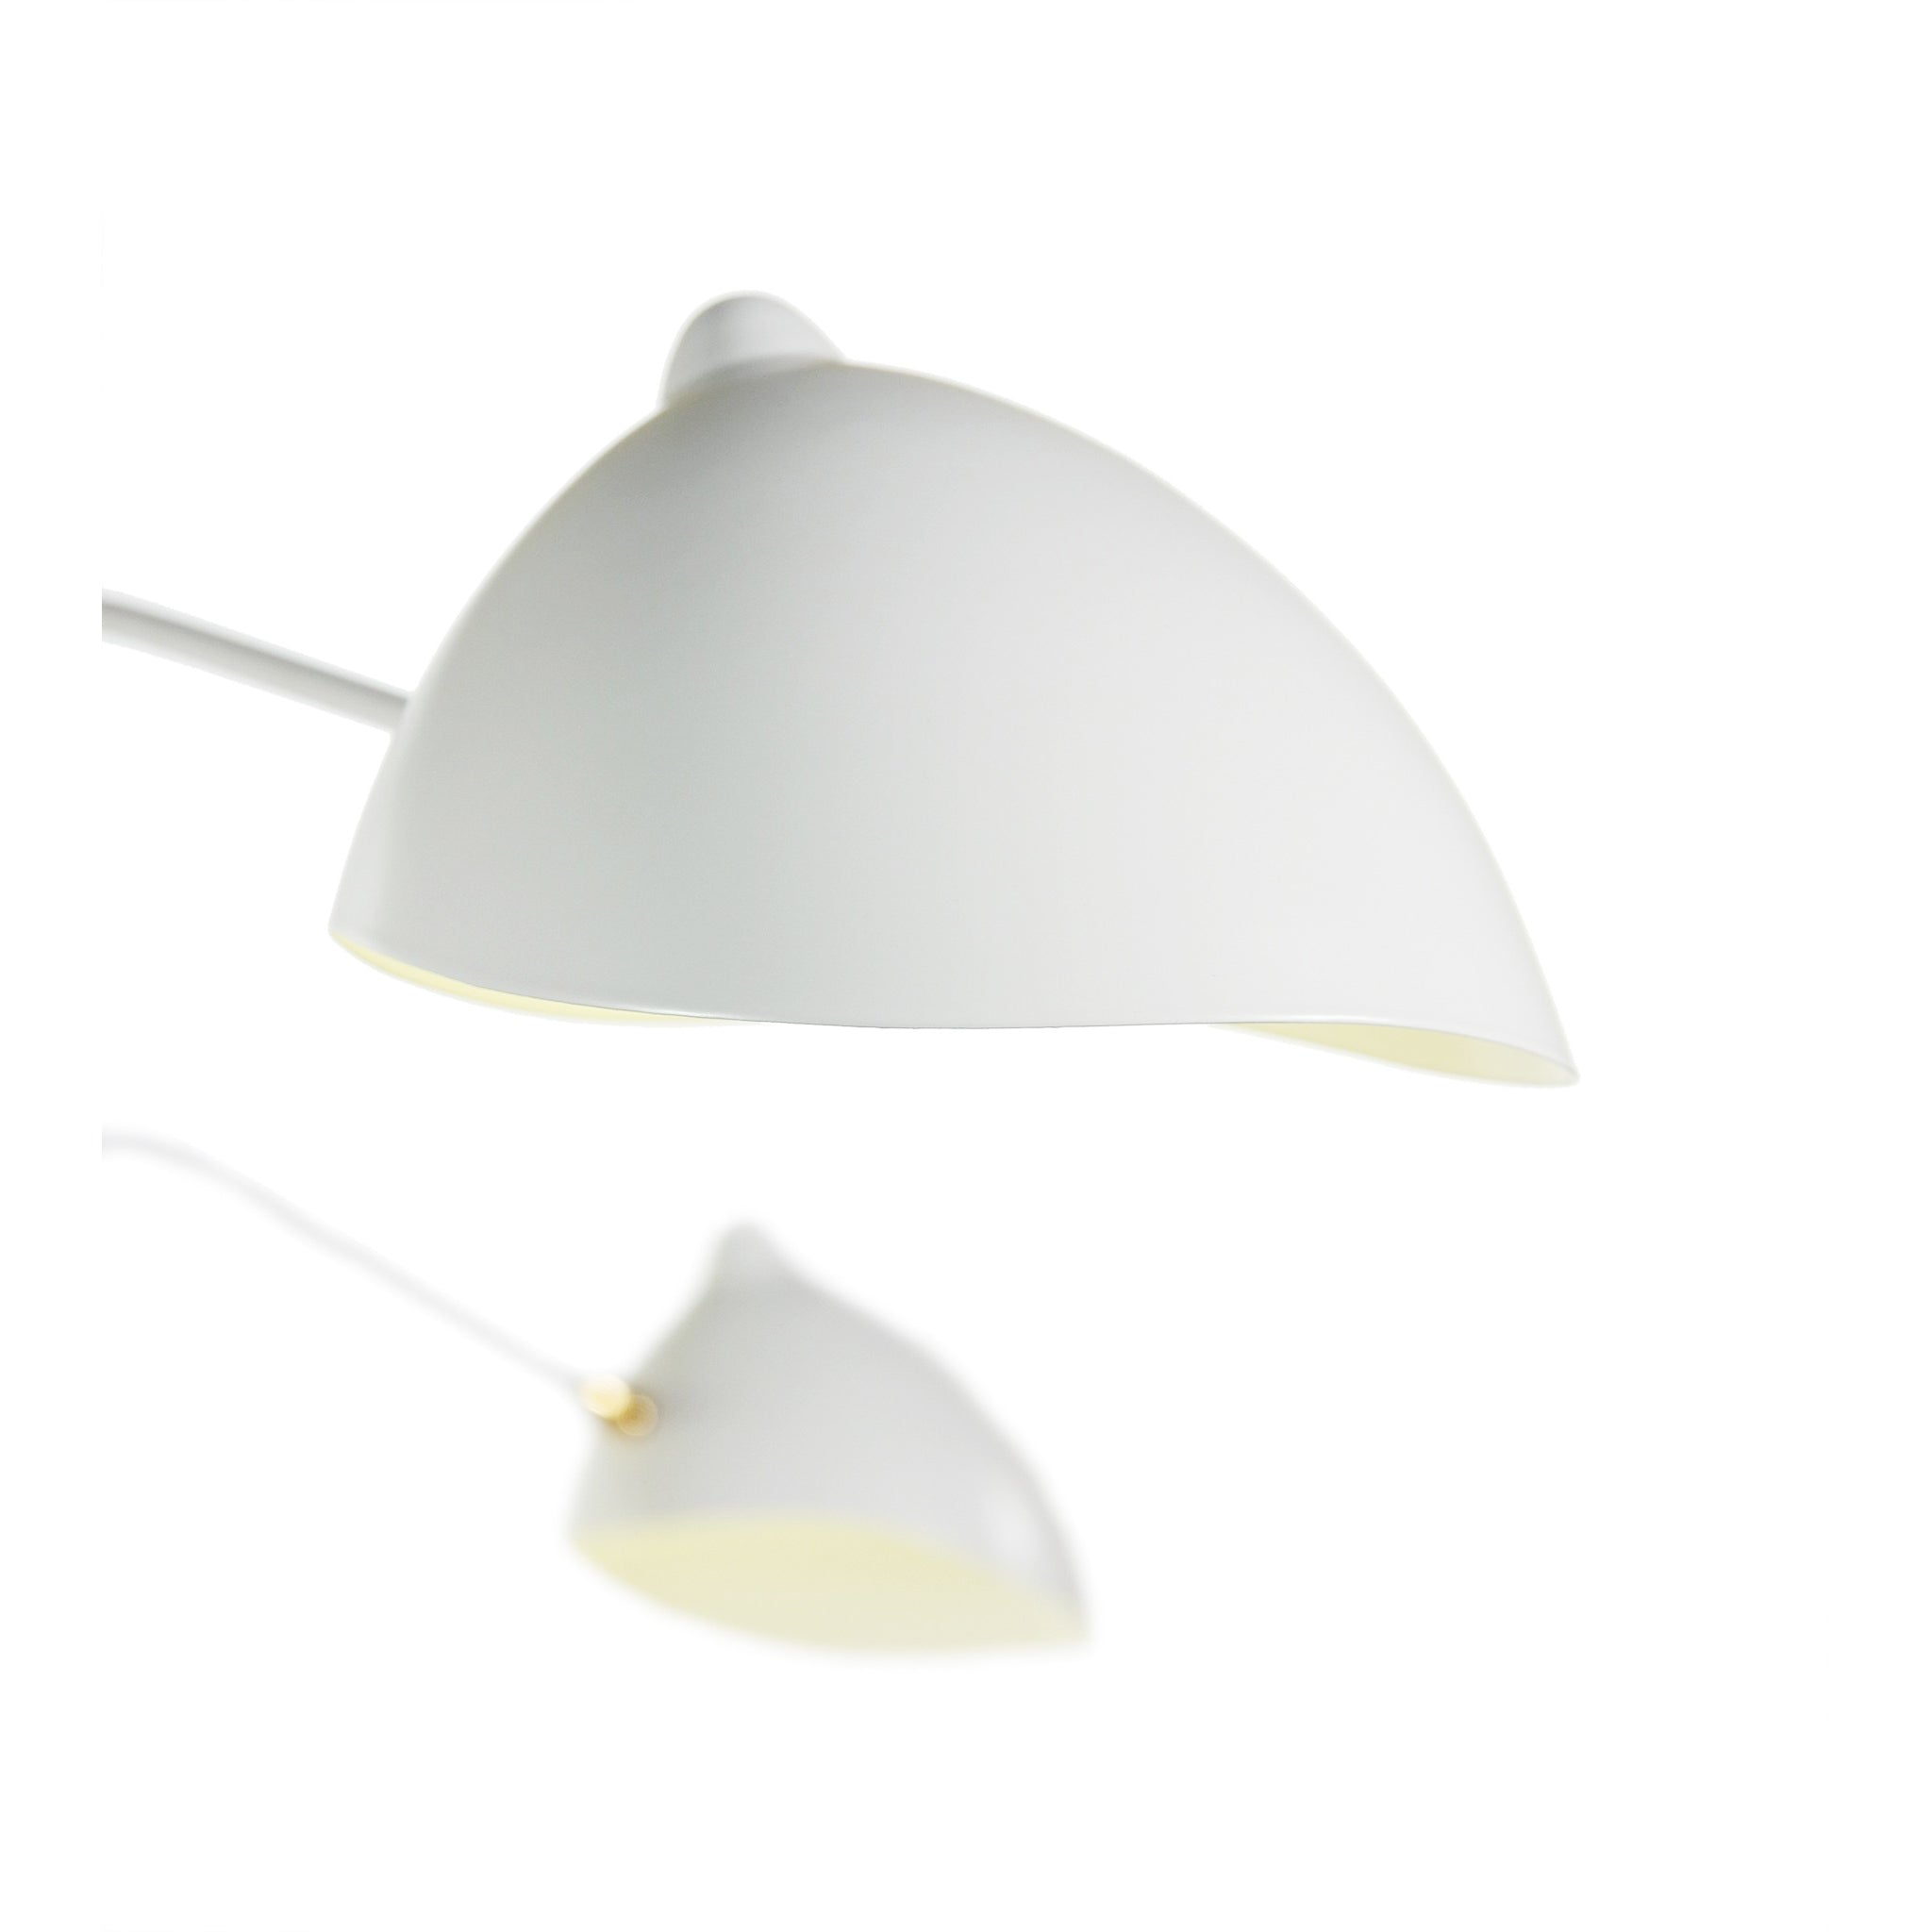 Mid Century 3-Arm Ceiling Light - White